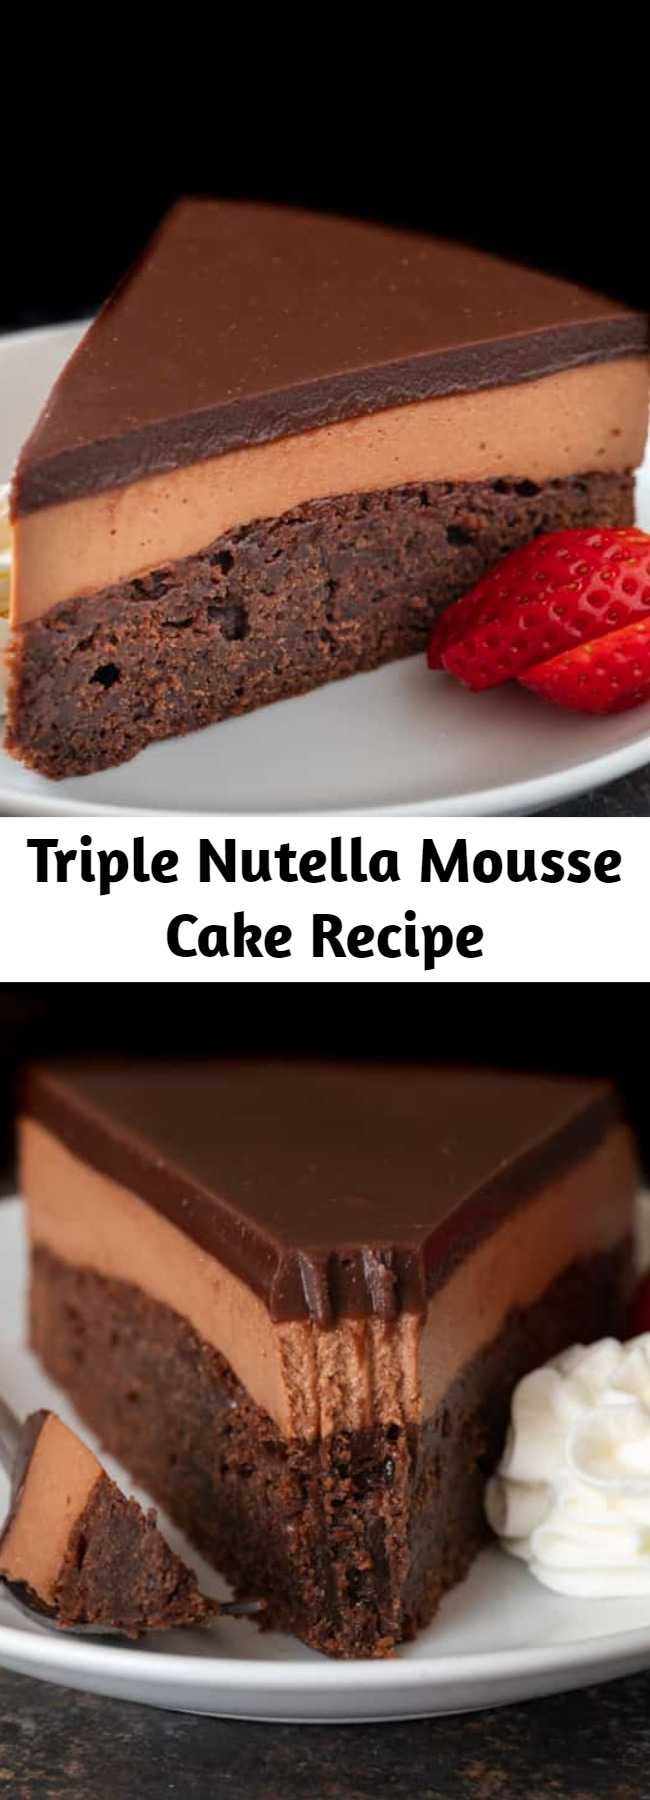 Triple Nutella Mousse Cake Recipe - This triple Nutella mousse cake features a rich Nutella brownie base topped with a layer of luscious Nutella mousse filling and a layer of soft Nutella ganache. #nutella #mousse #cake #valentines